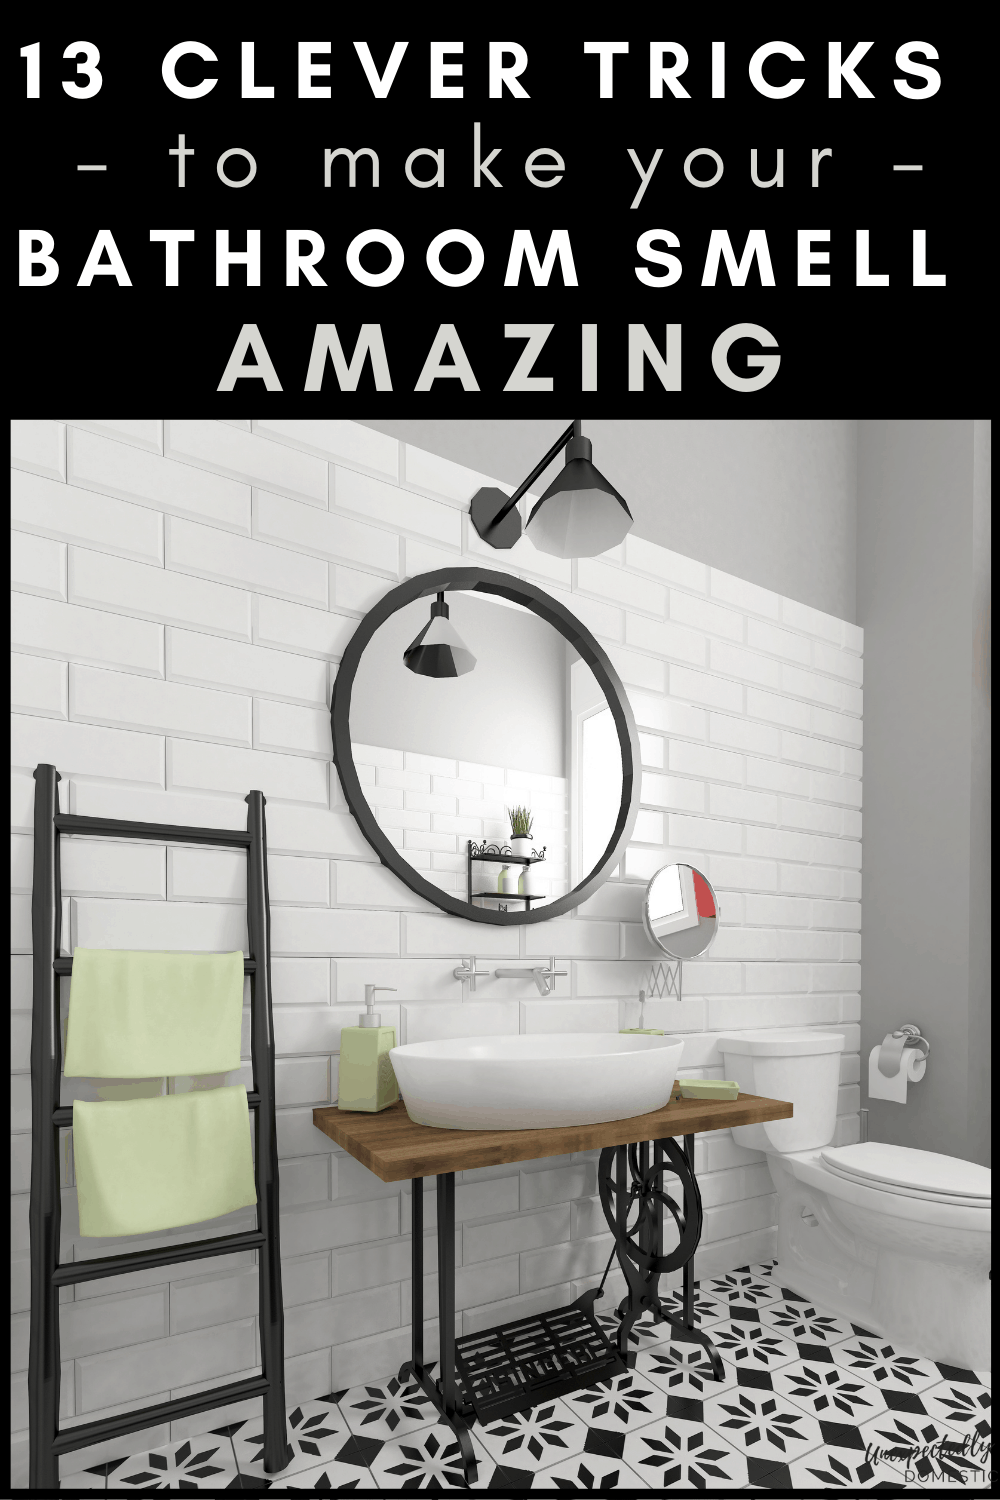 How to make your bathroom smell nice! Get rid of bathroom odor naturally with these easy hacks!